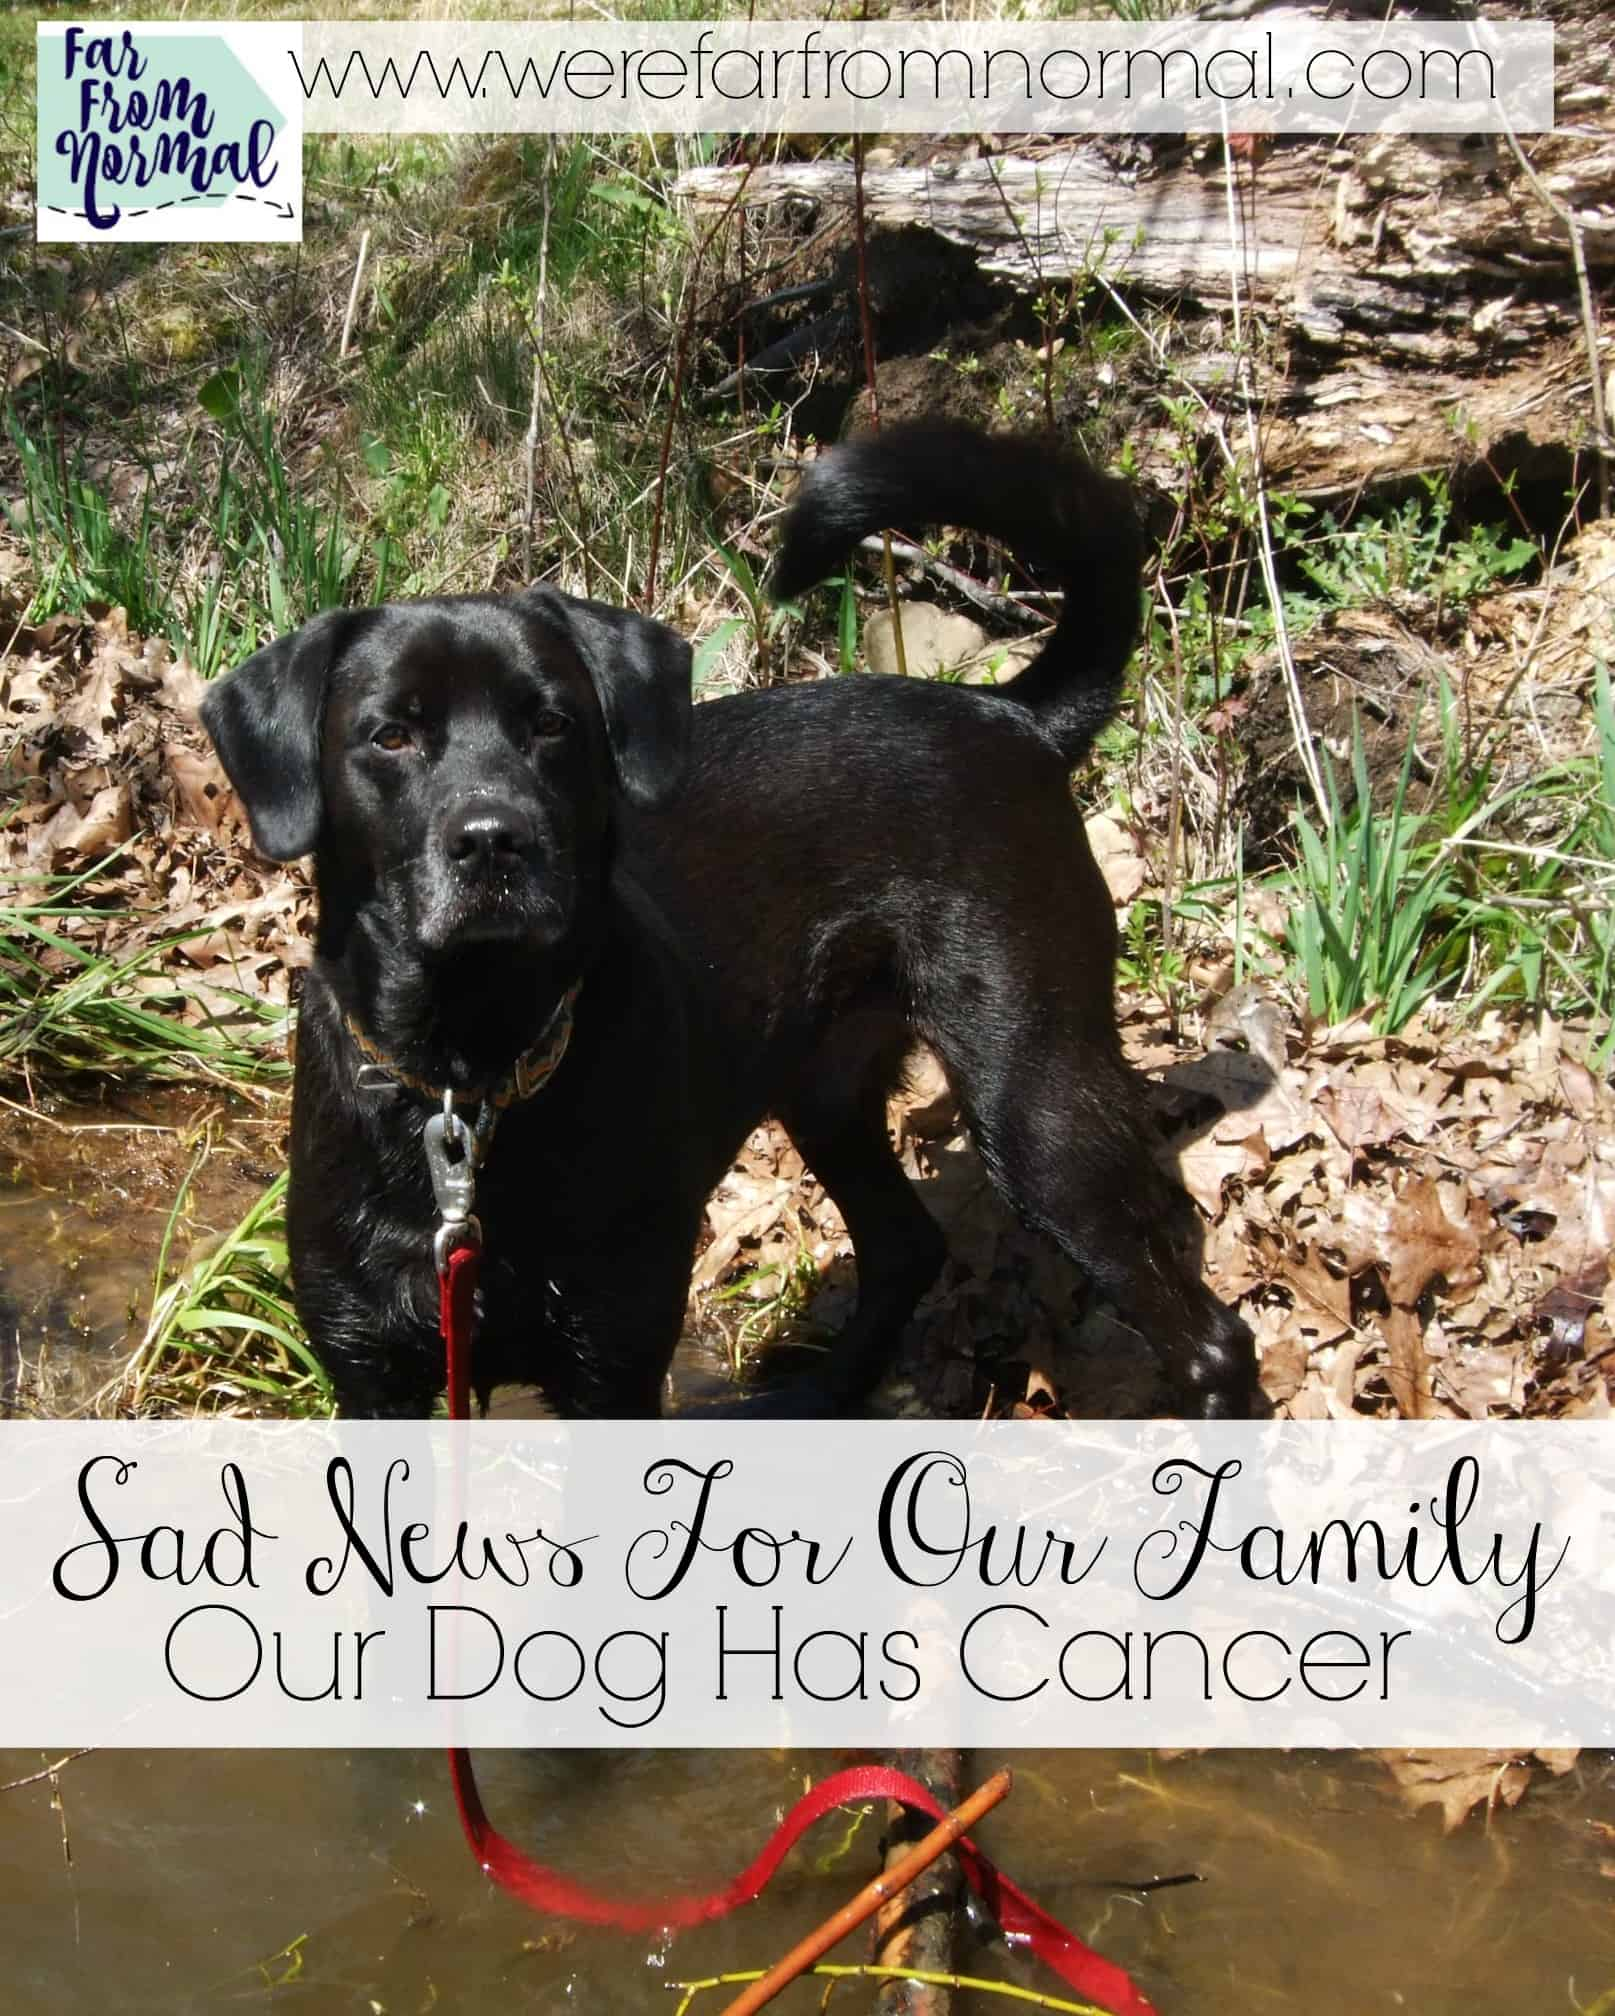 Sad News For Our Family- Our Dog Has Cancer